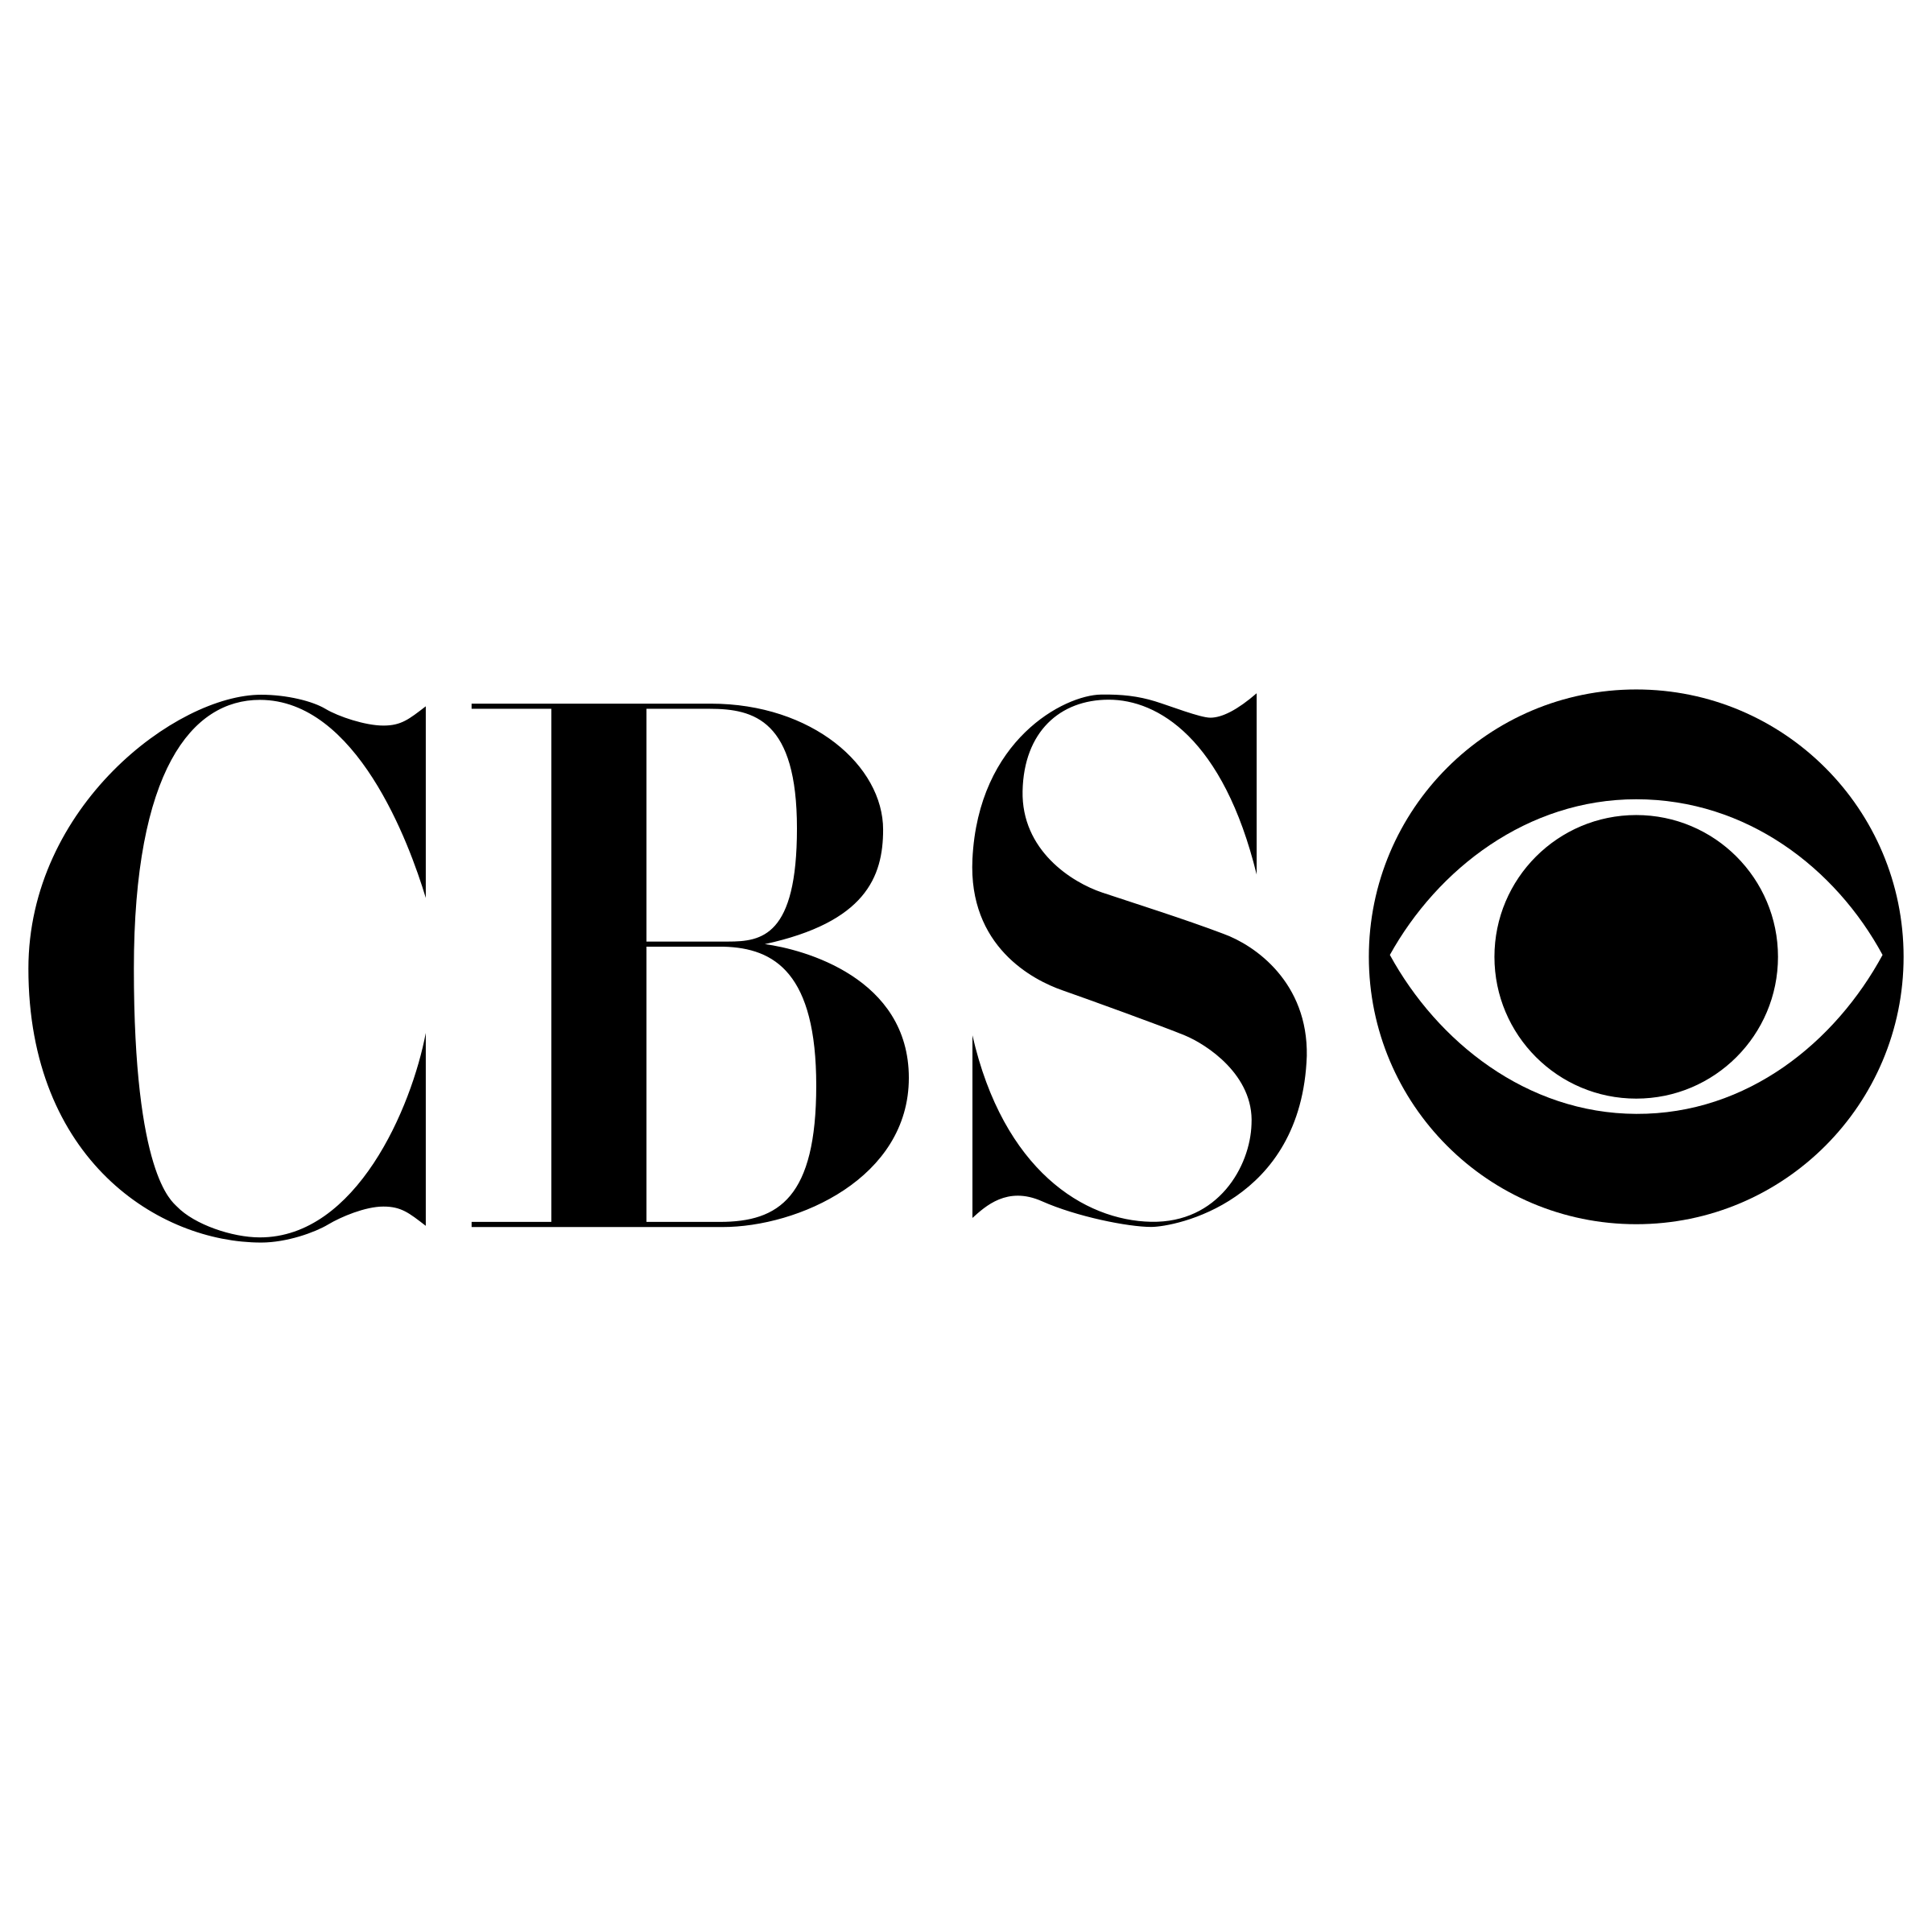 cbs-logo-png-transparent